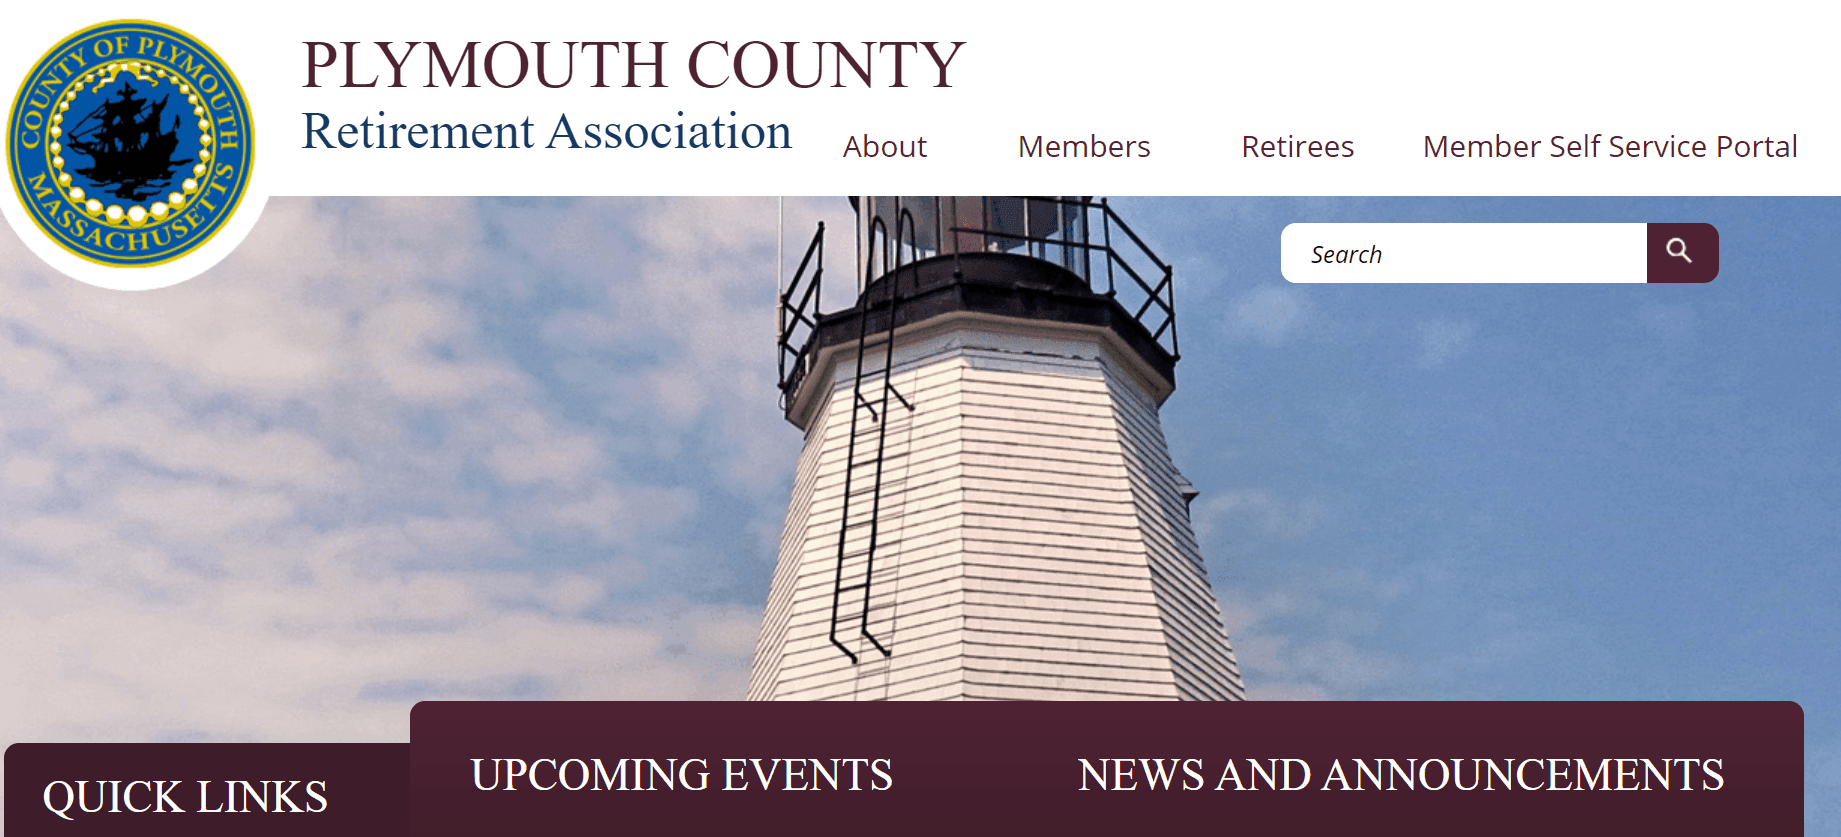 Plymouth County Retirement Website